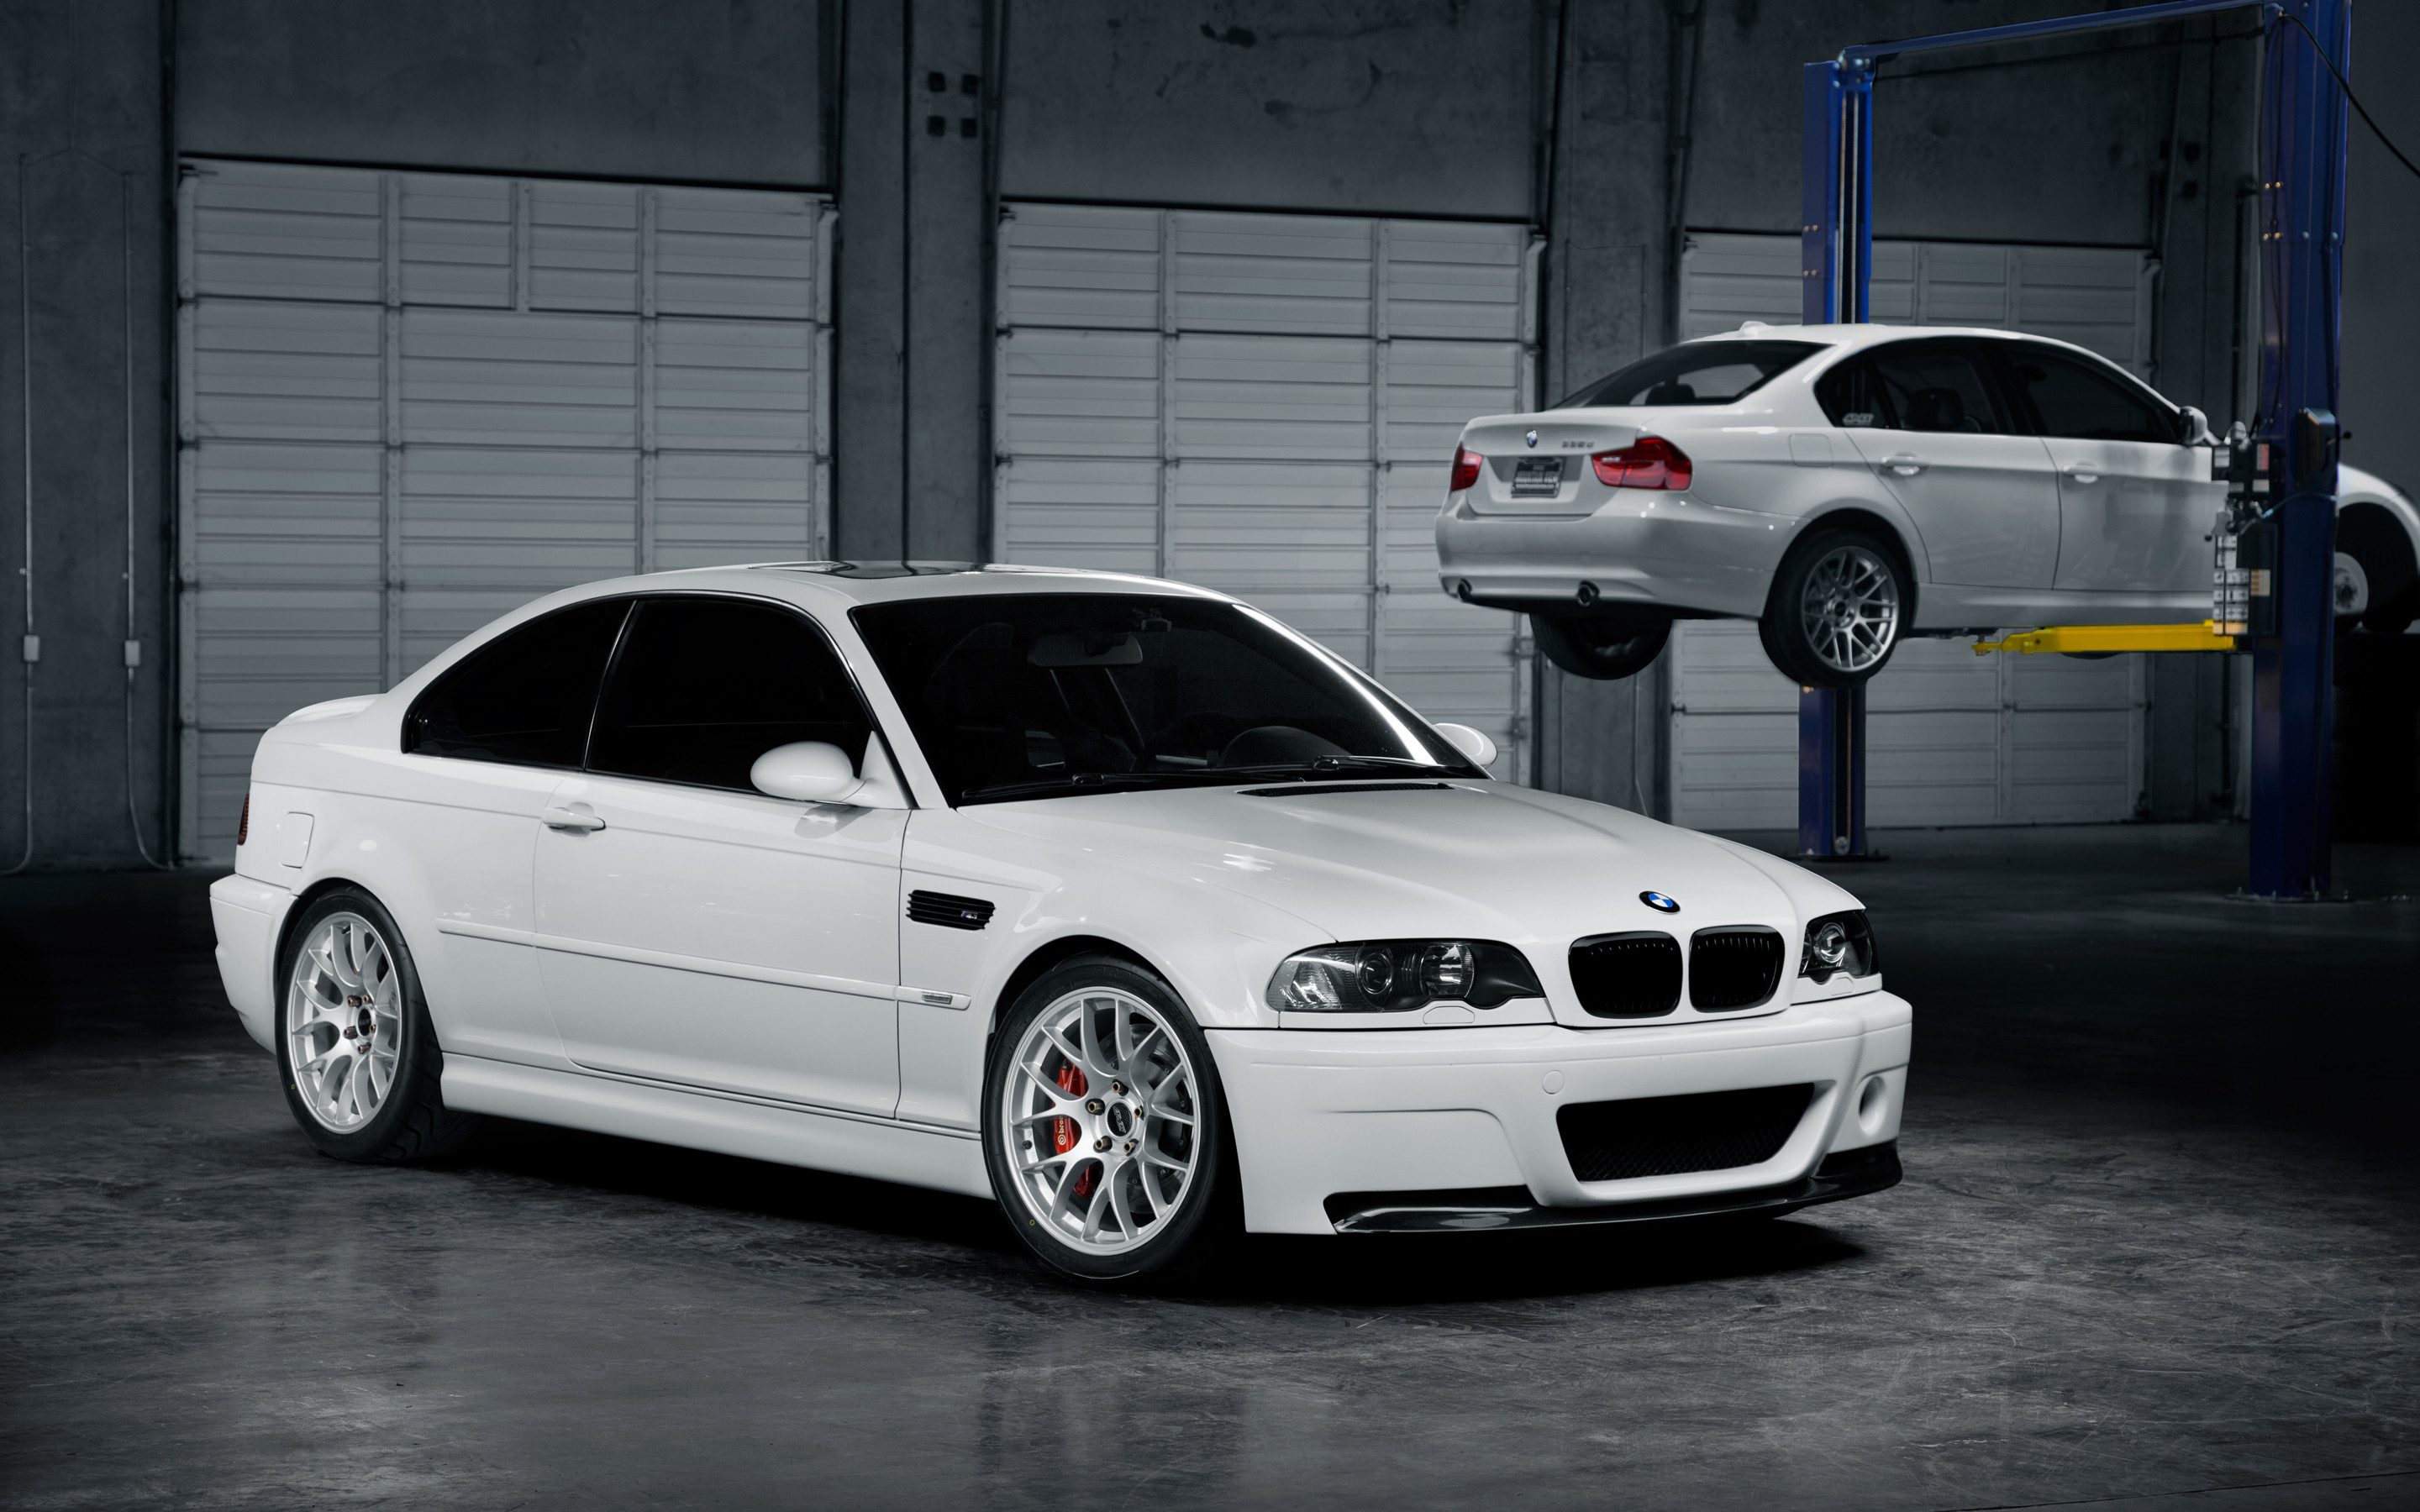 2880x1800 Bmw E46 M3 Wallpapers HD